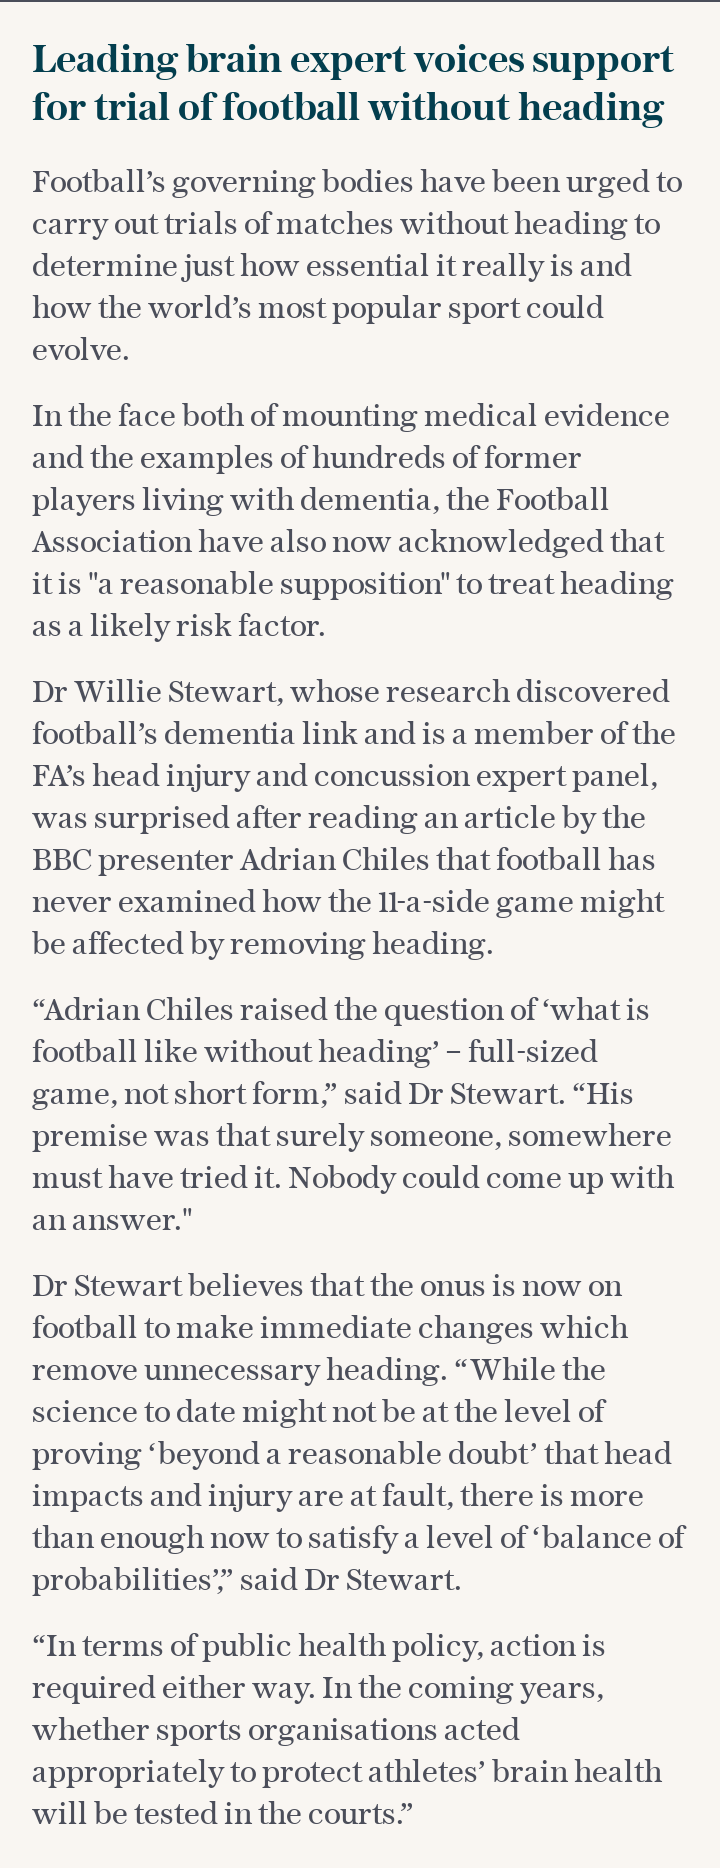 Leading brain expert voices support for trial of football without heading